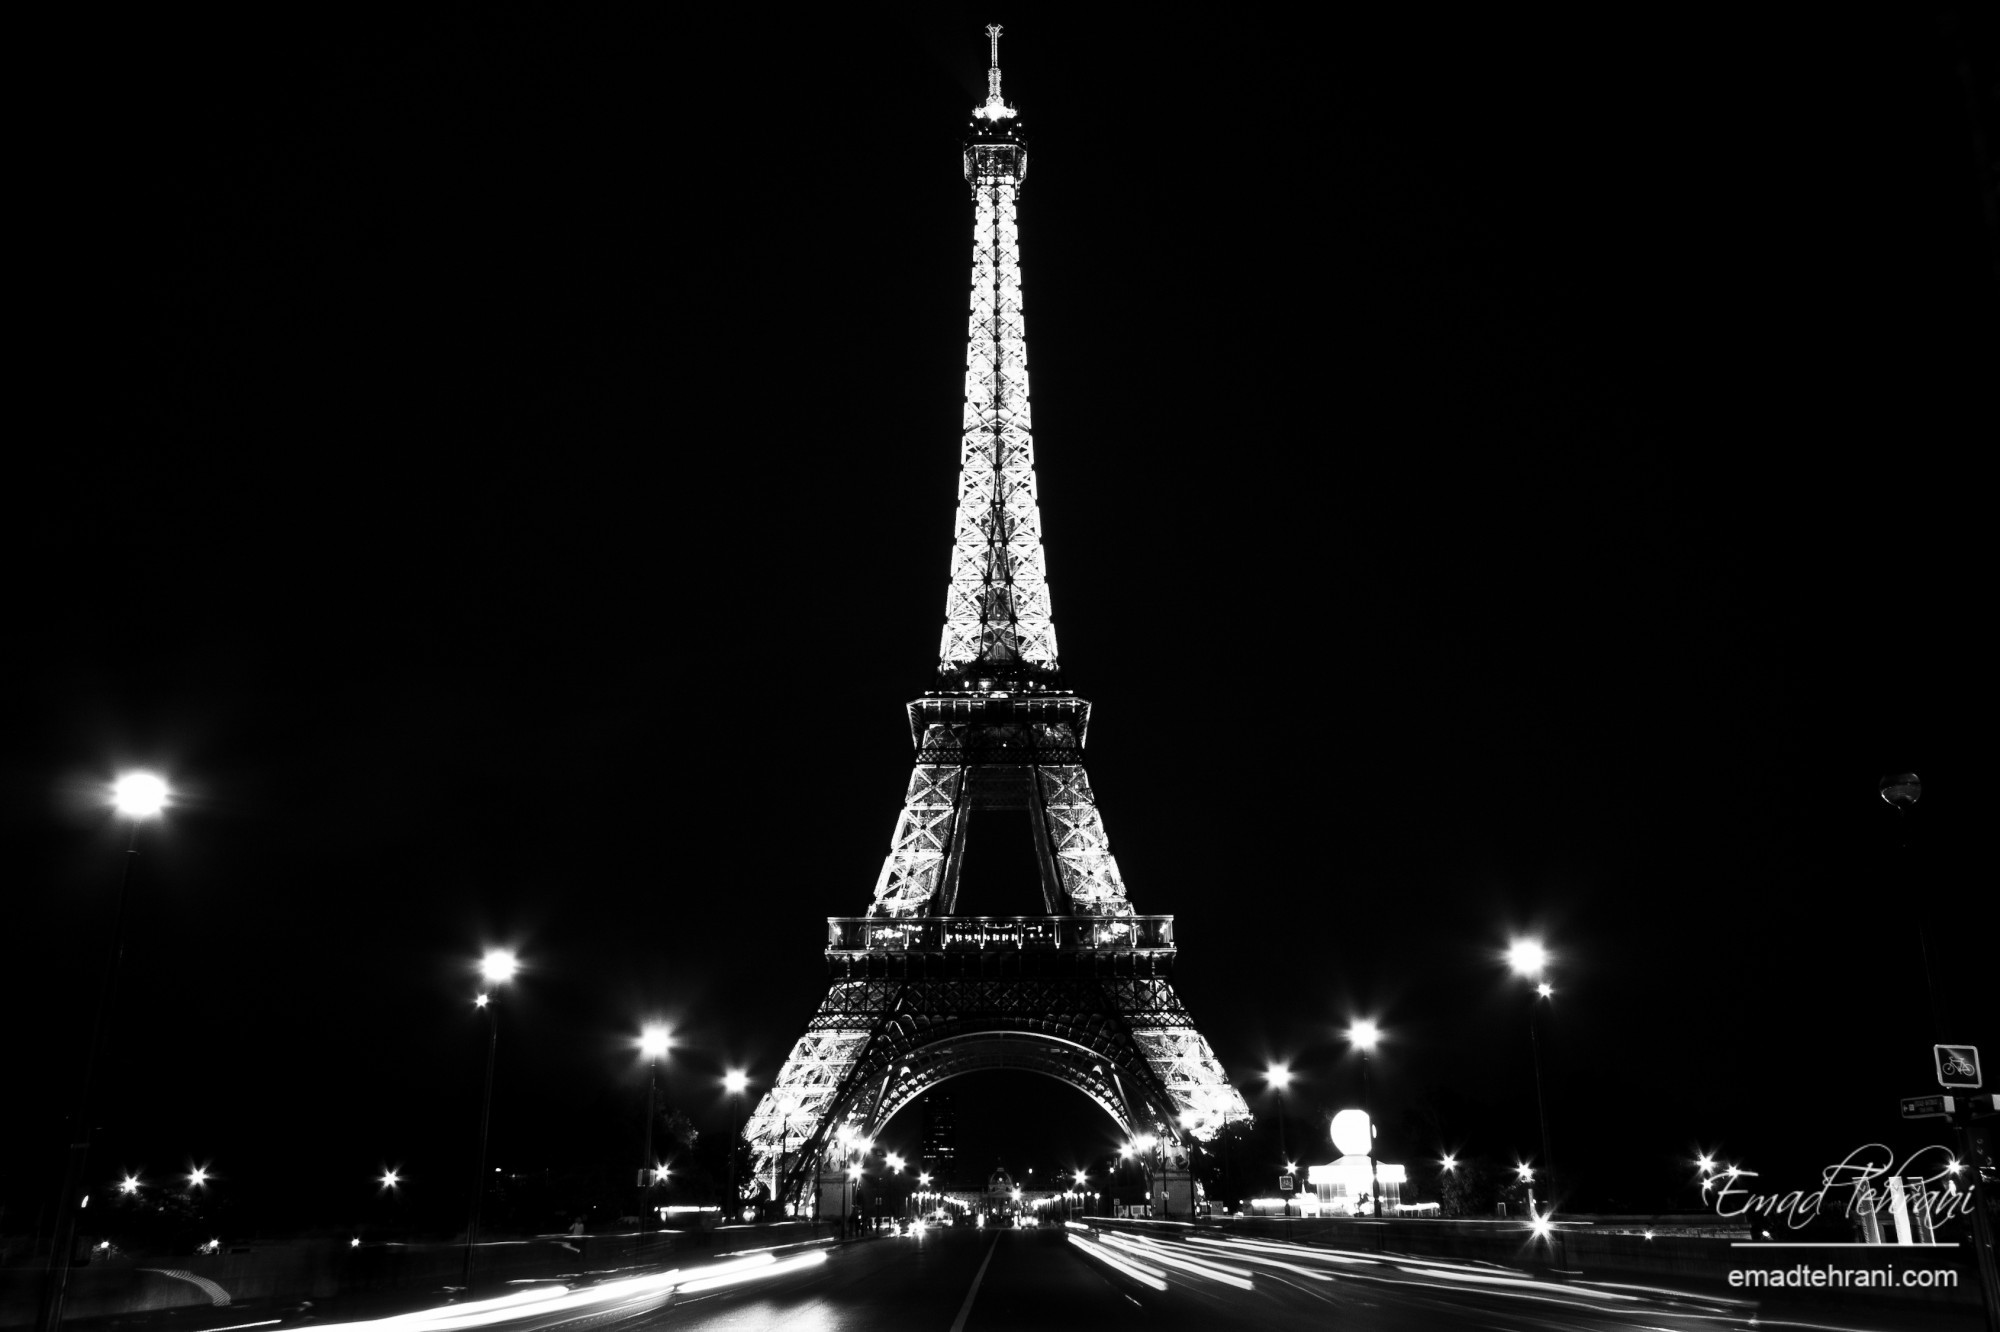 Eiffel Tower Images Black And White: 30 Eiffel Tower At Night Images